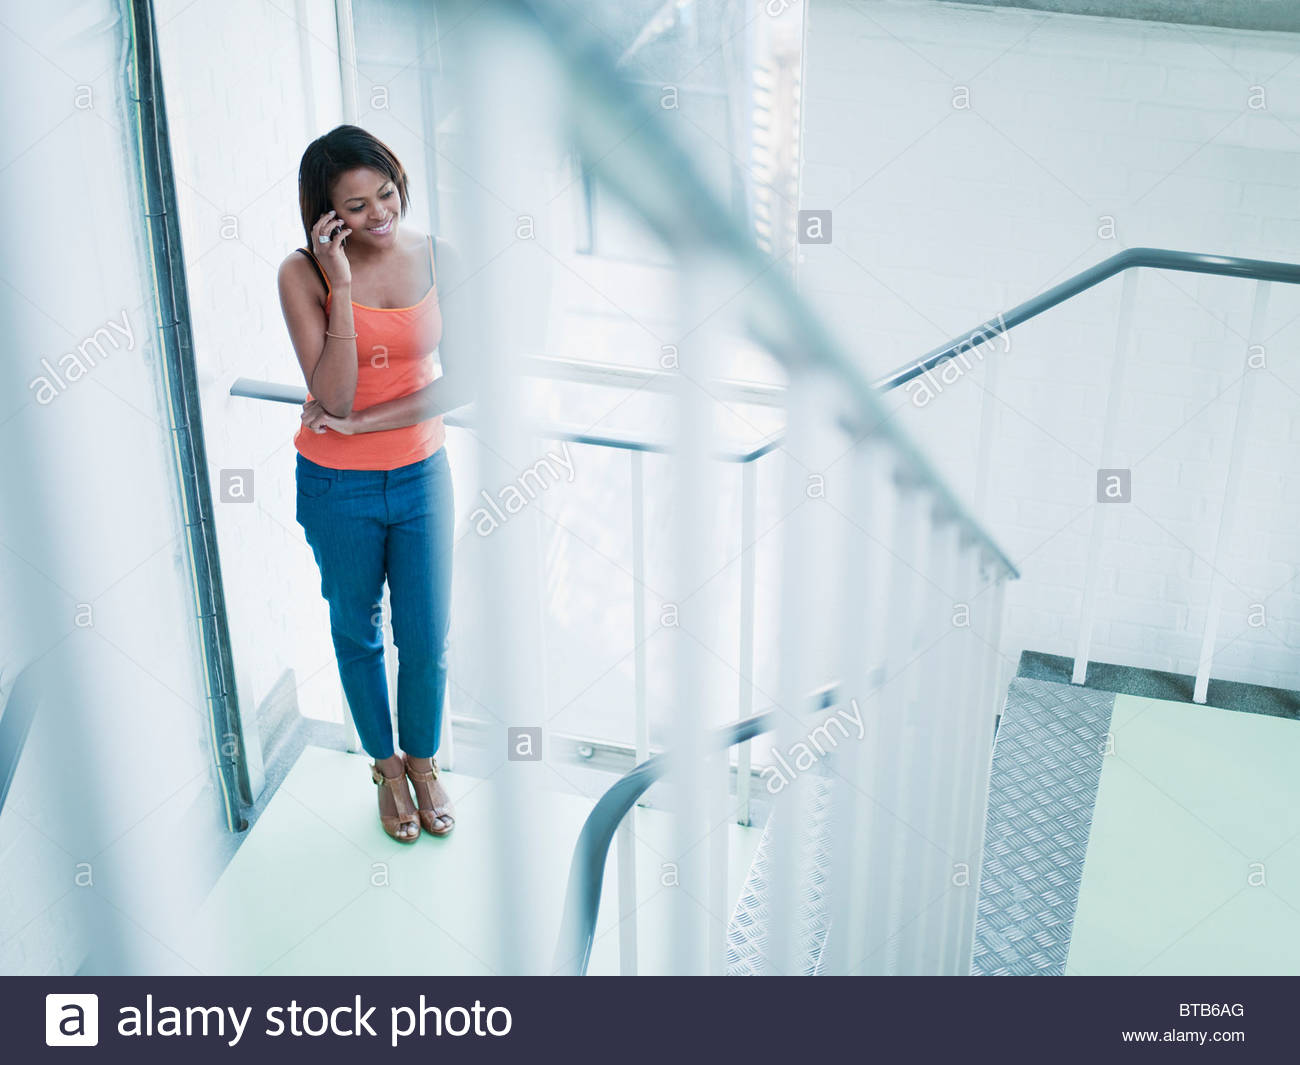 Smiling woman talking on cell phone in stairway - Stock Image